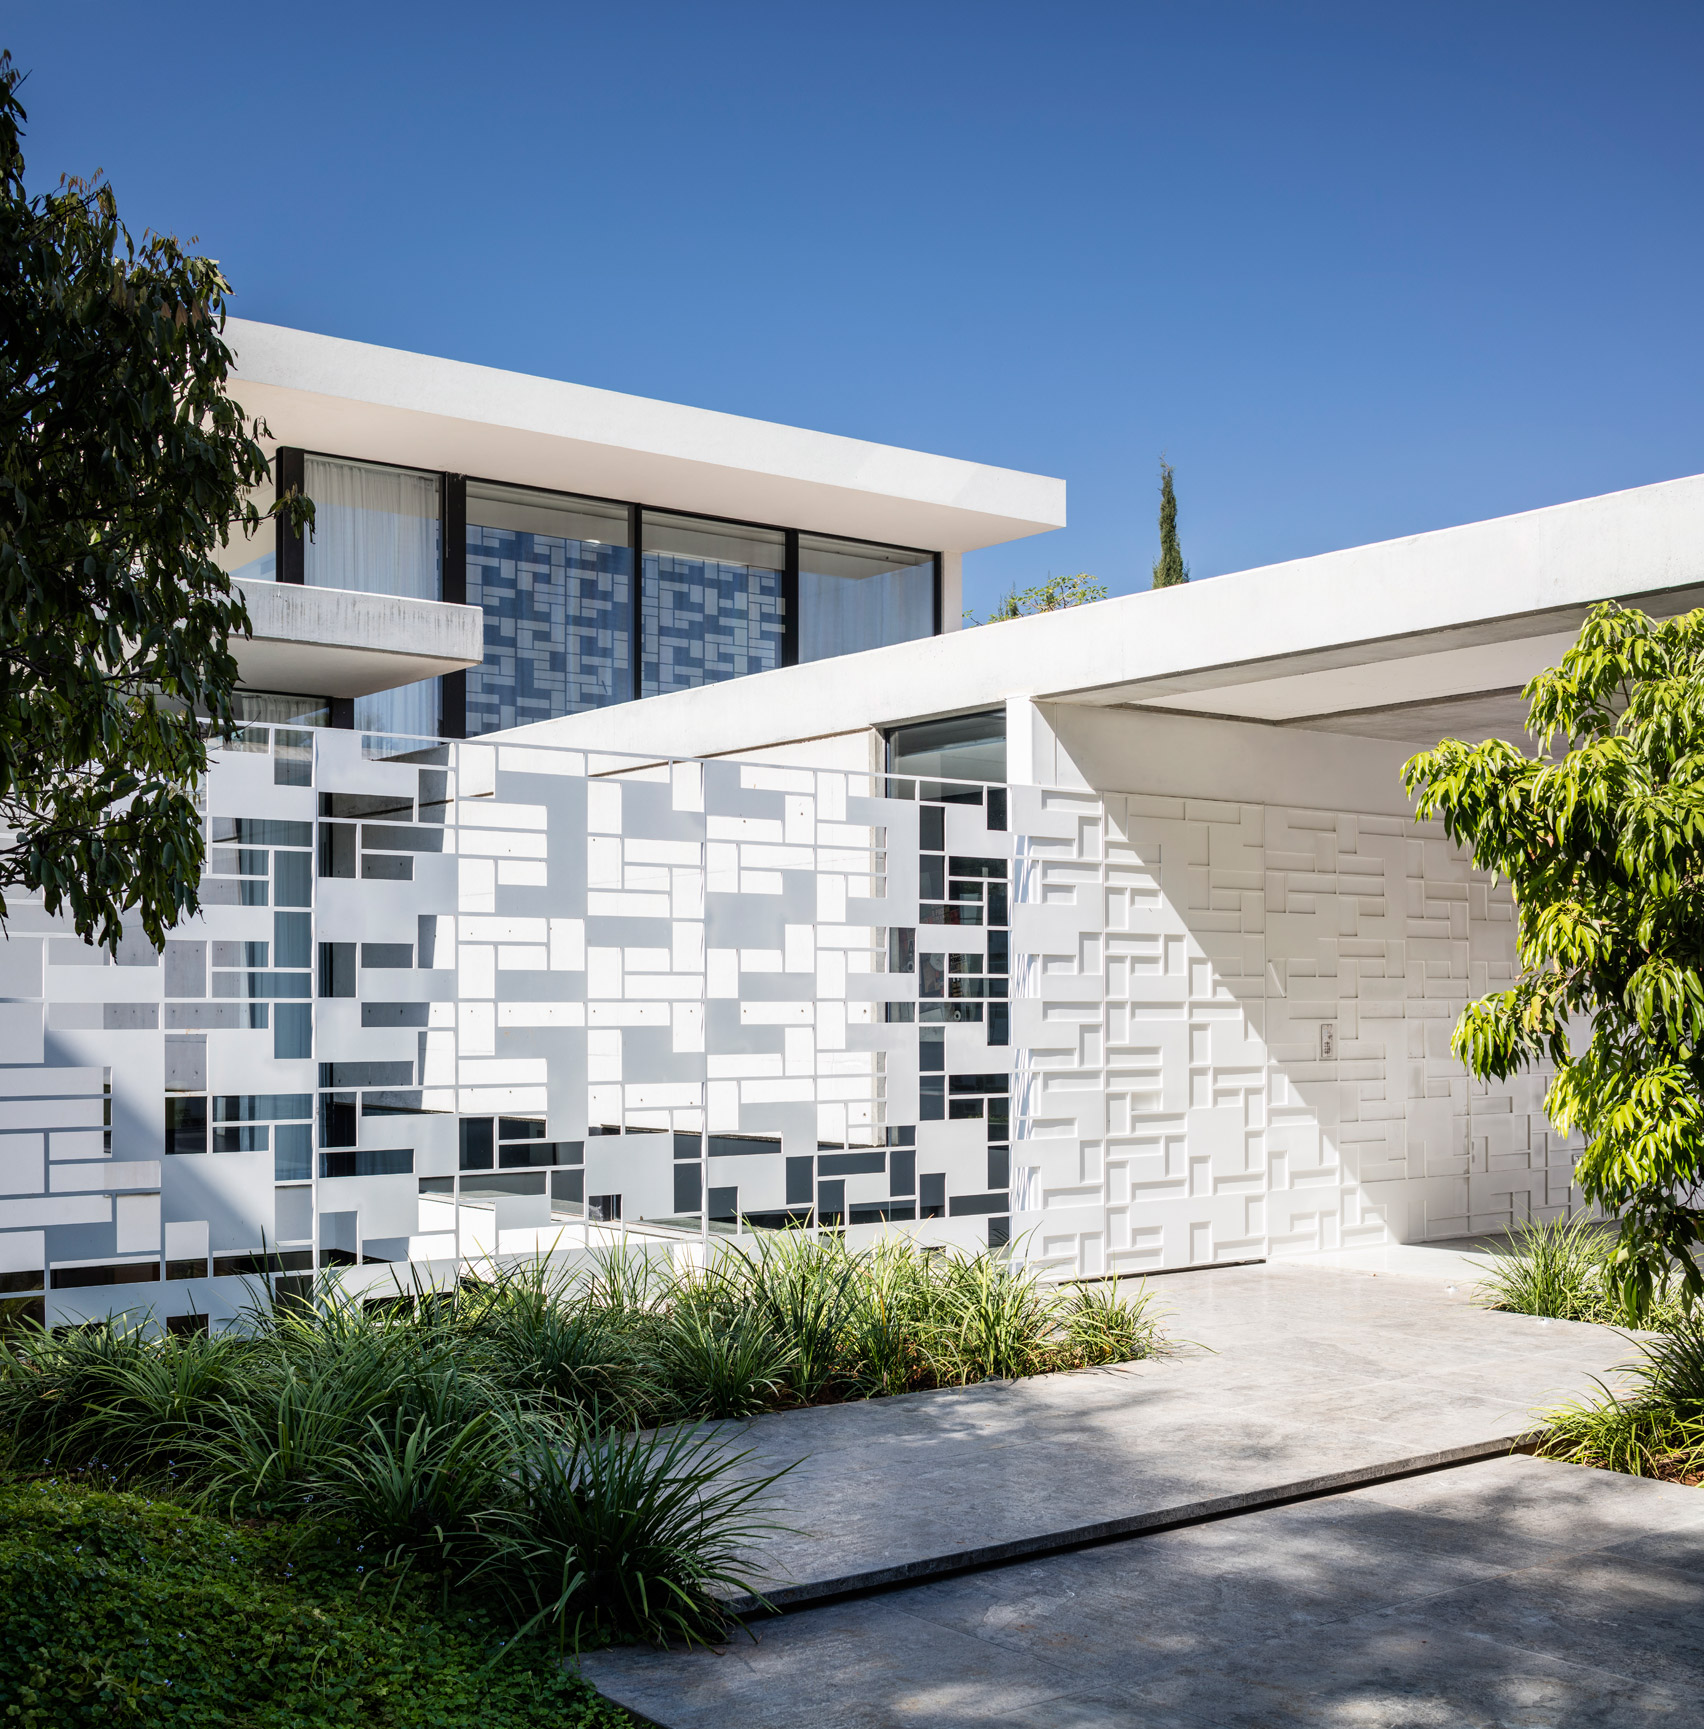 Pitsou Kedem's AB House features grid-like perforated screens inside and out